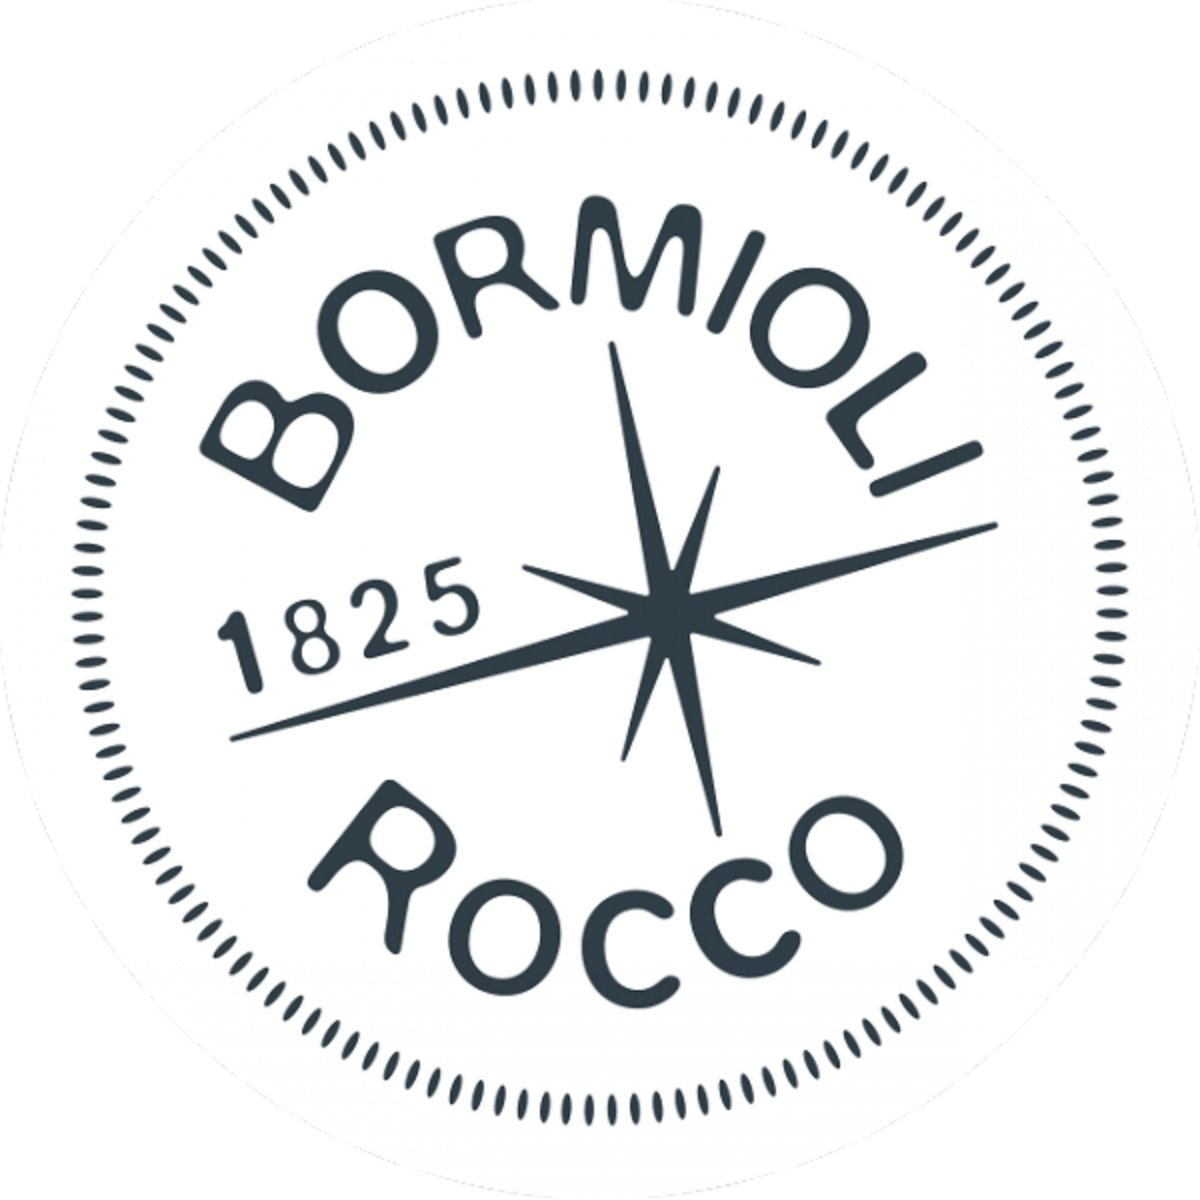 Bormioli Rocco B072M8GHN2 Fido Clear Glass Jar with 85 mm Gasket, 1.5 Liter (Pack of 2)